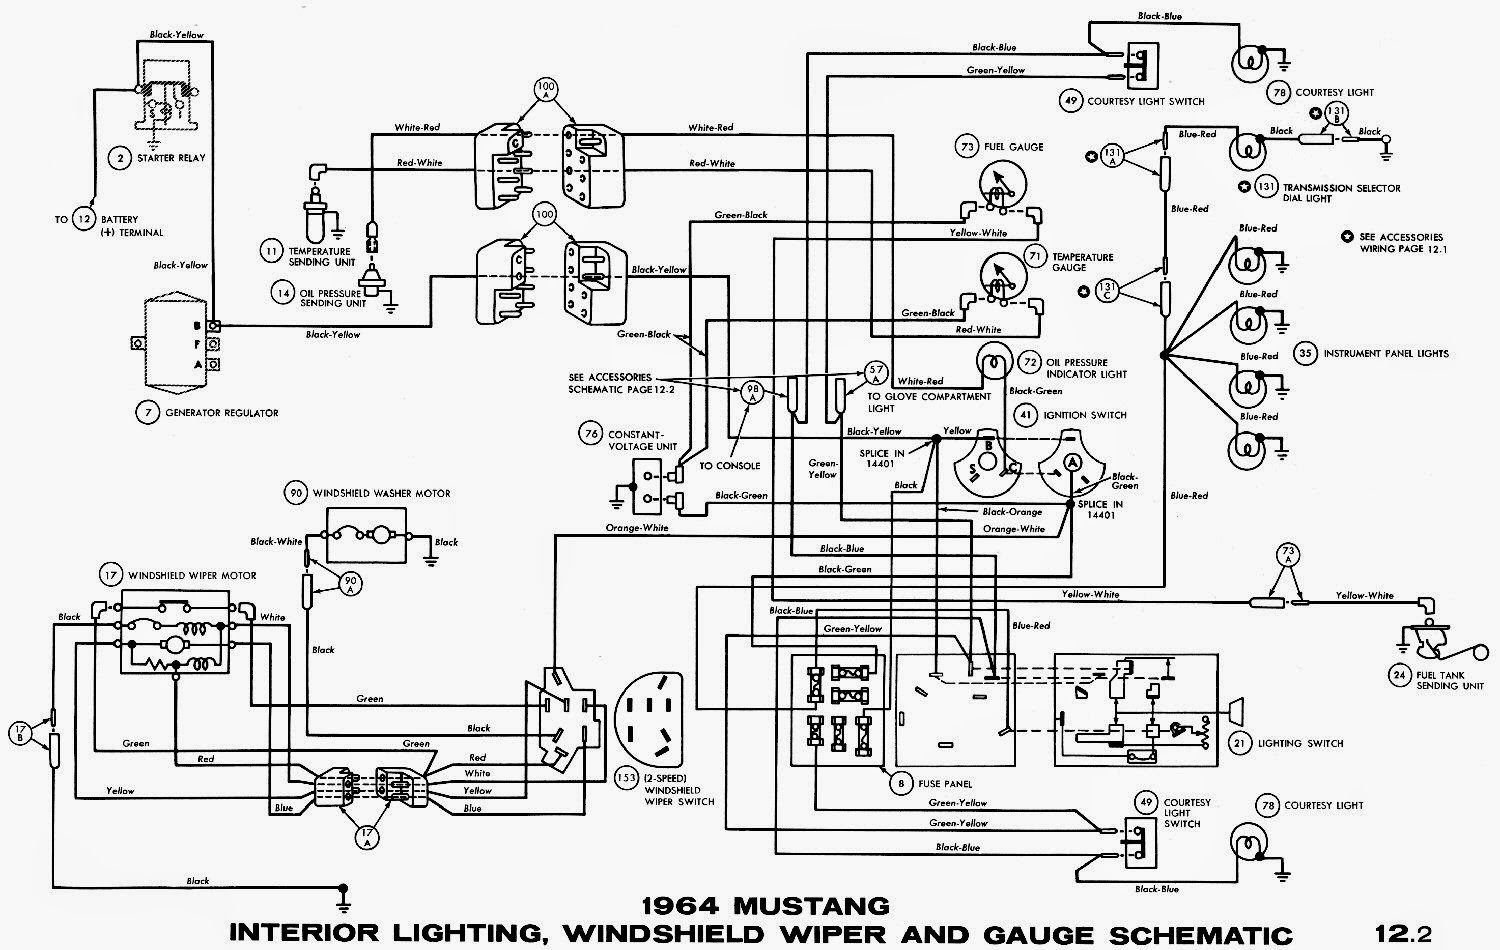 1964%2BMustang%2BWiring%2BDiagrams 1964 mustang wiring diagrams schematic wiring diagrams 1990 k1500 wiring diagram at gsmportal.co